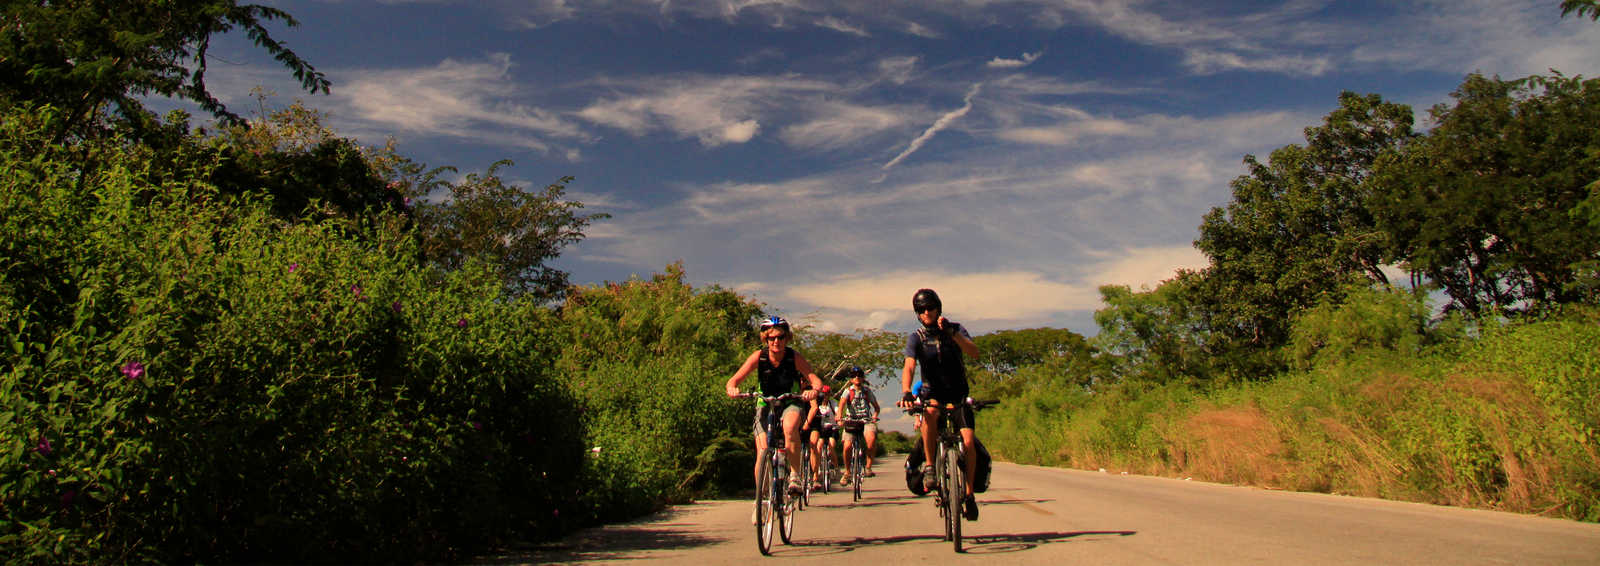 Group cycling in the countryside of Yucatan, Mexico